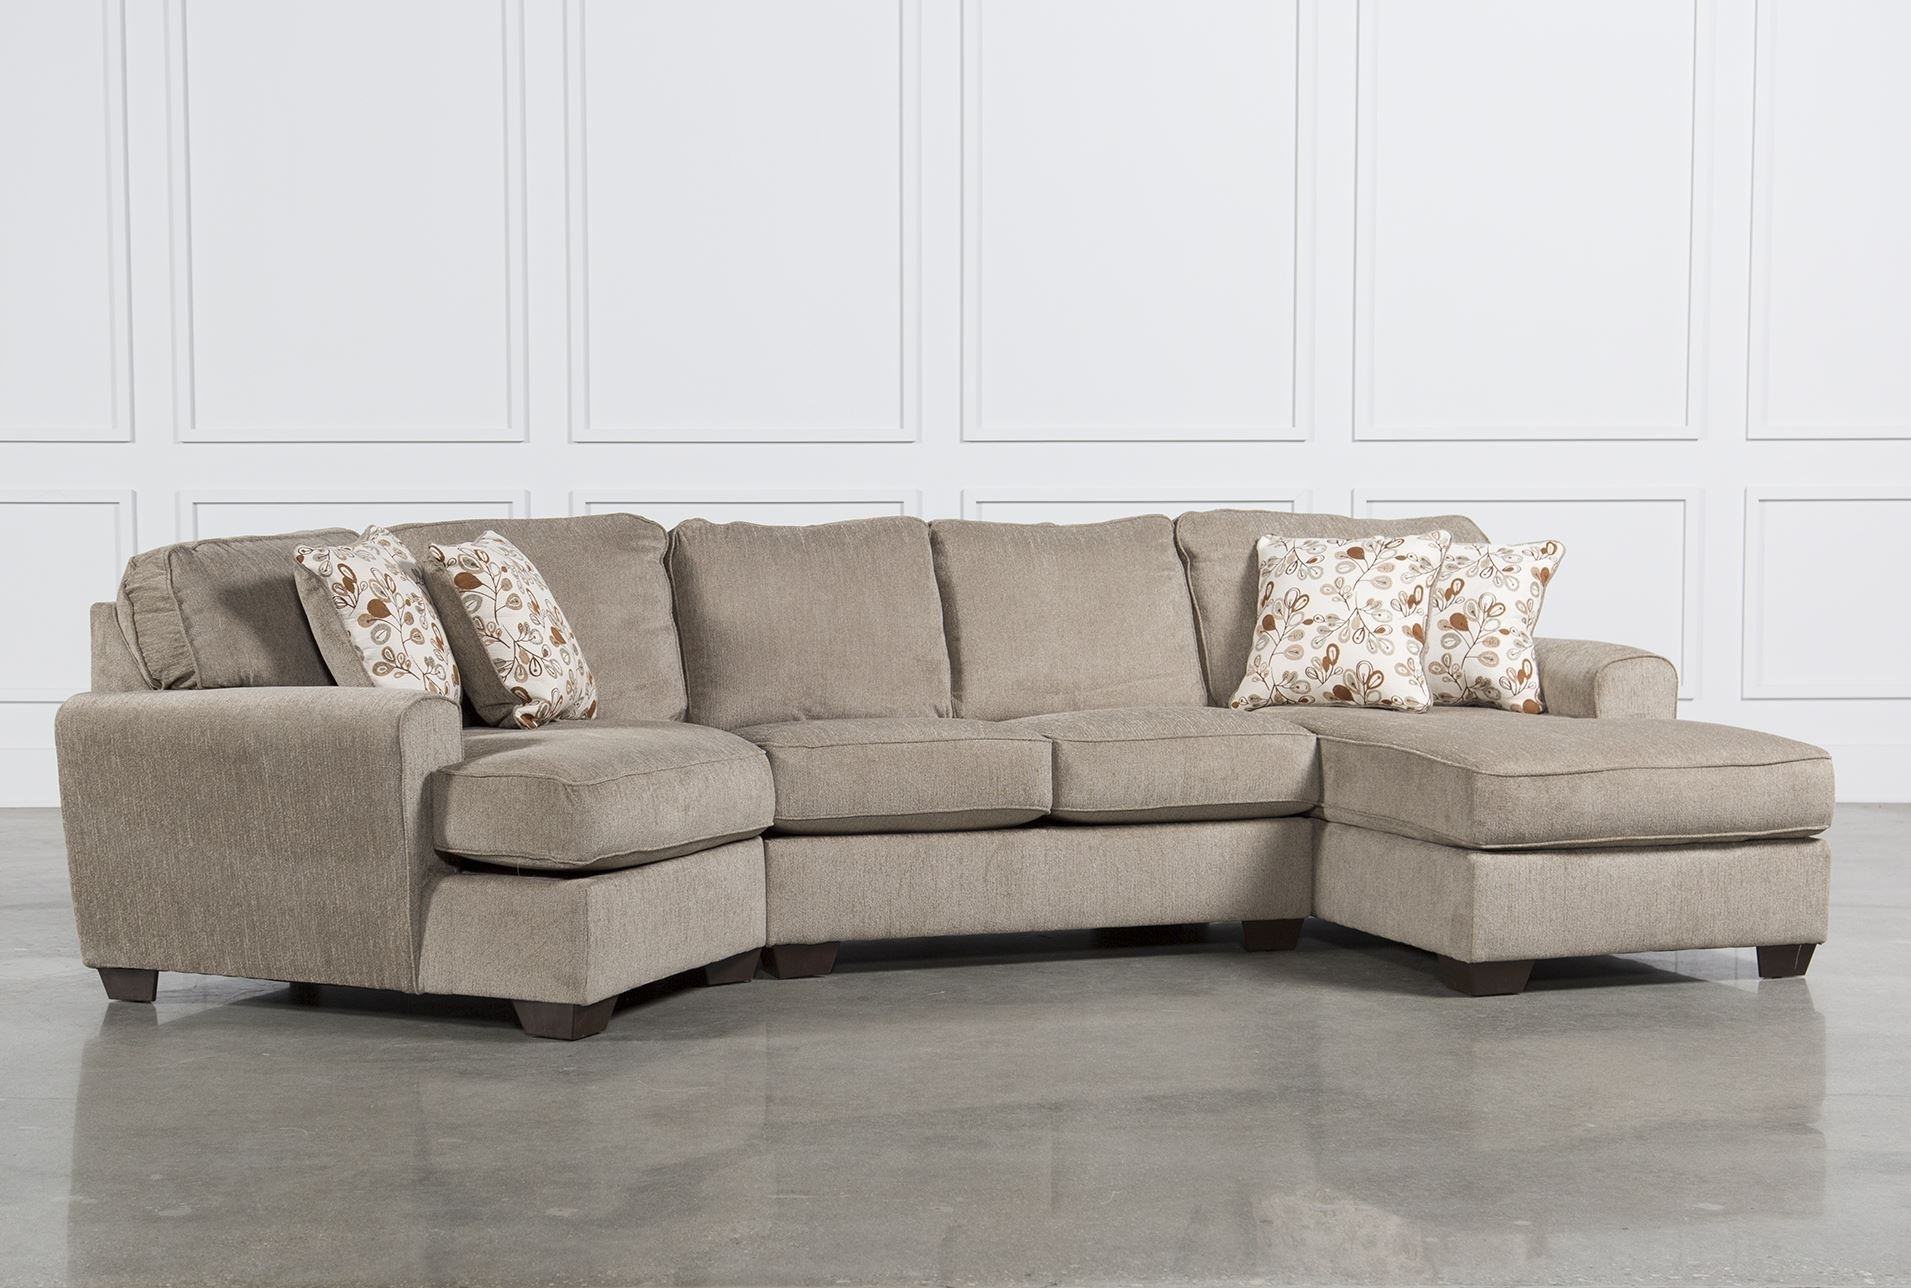 Awesome Sectional Sofa With Cuddler Chaise – Buildsimplehome Inside Haven 3 Piece Sectionals (Image 3 of 25)